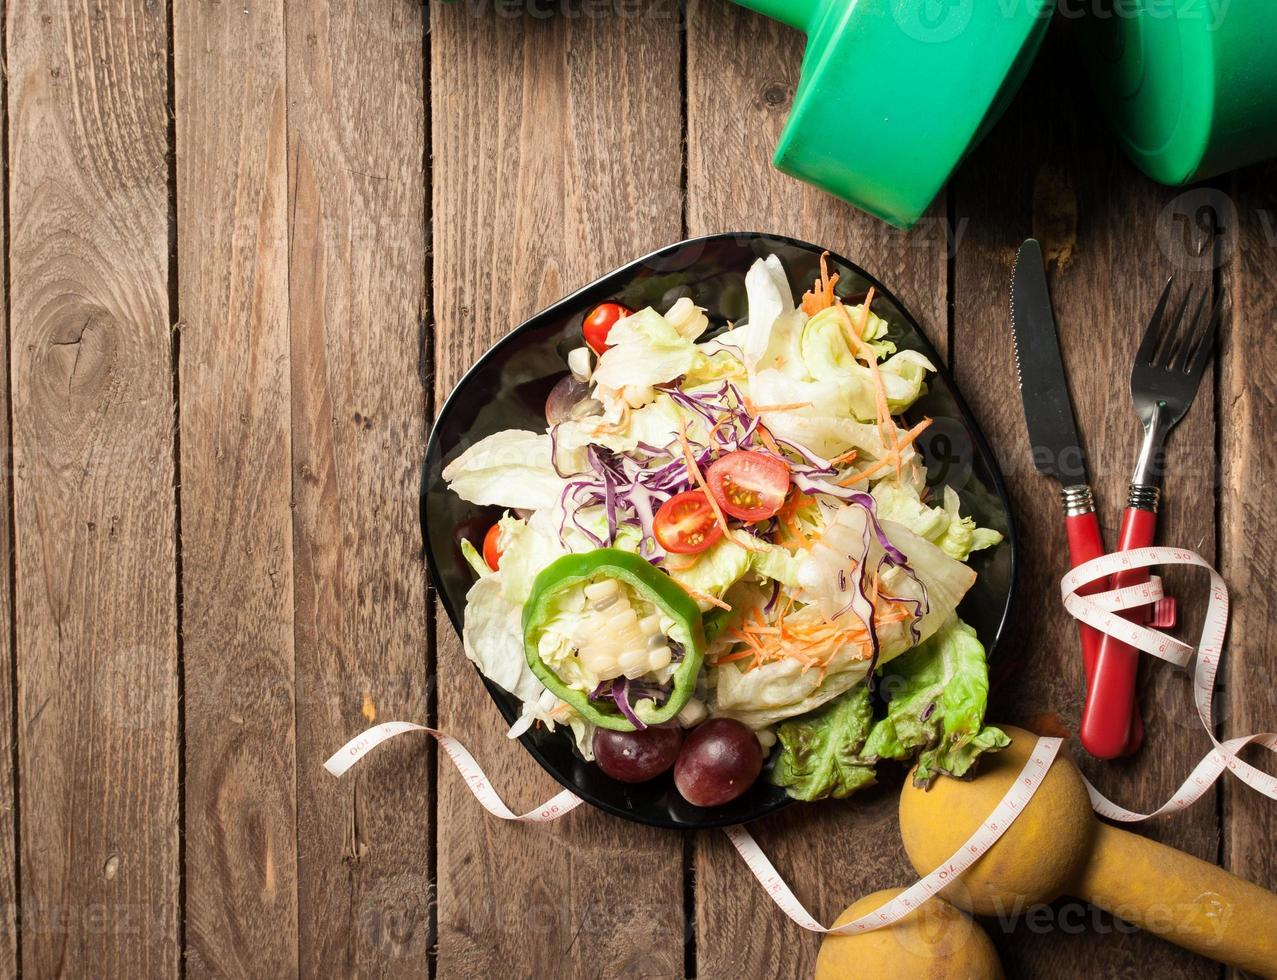 Dumbells, tape measure and healthy food salad on wooden backgrou photo